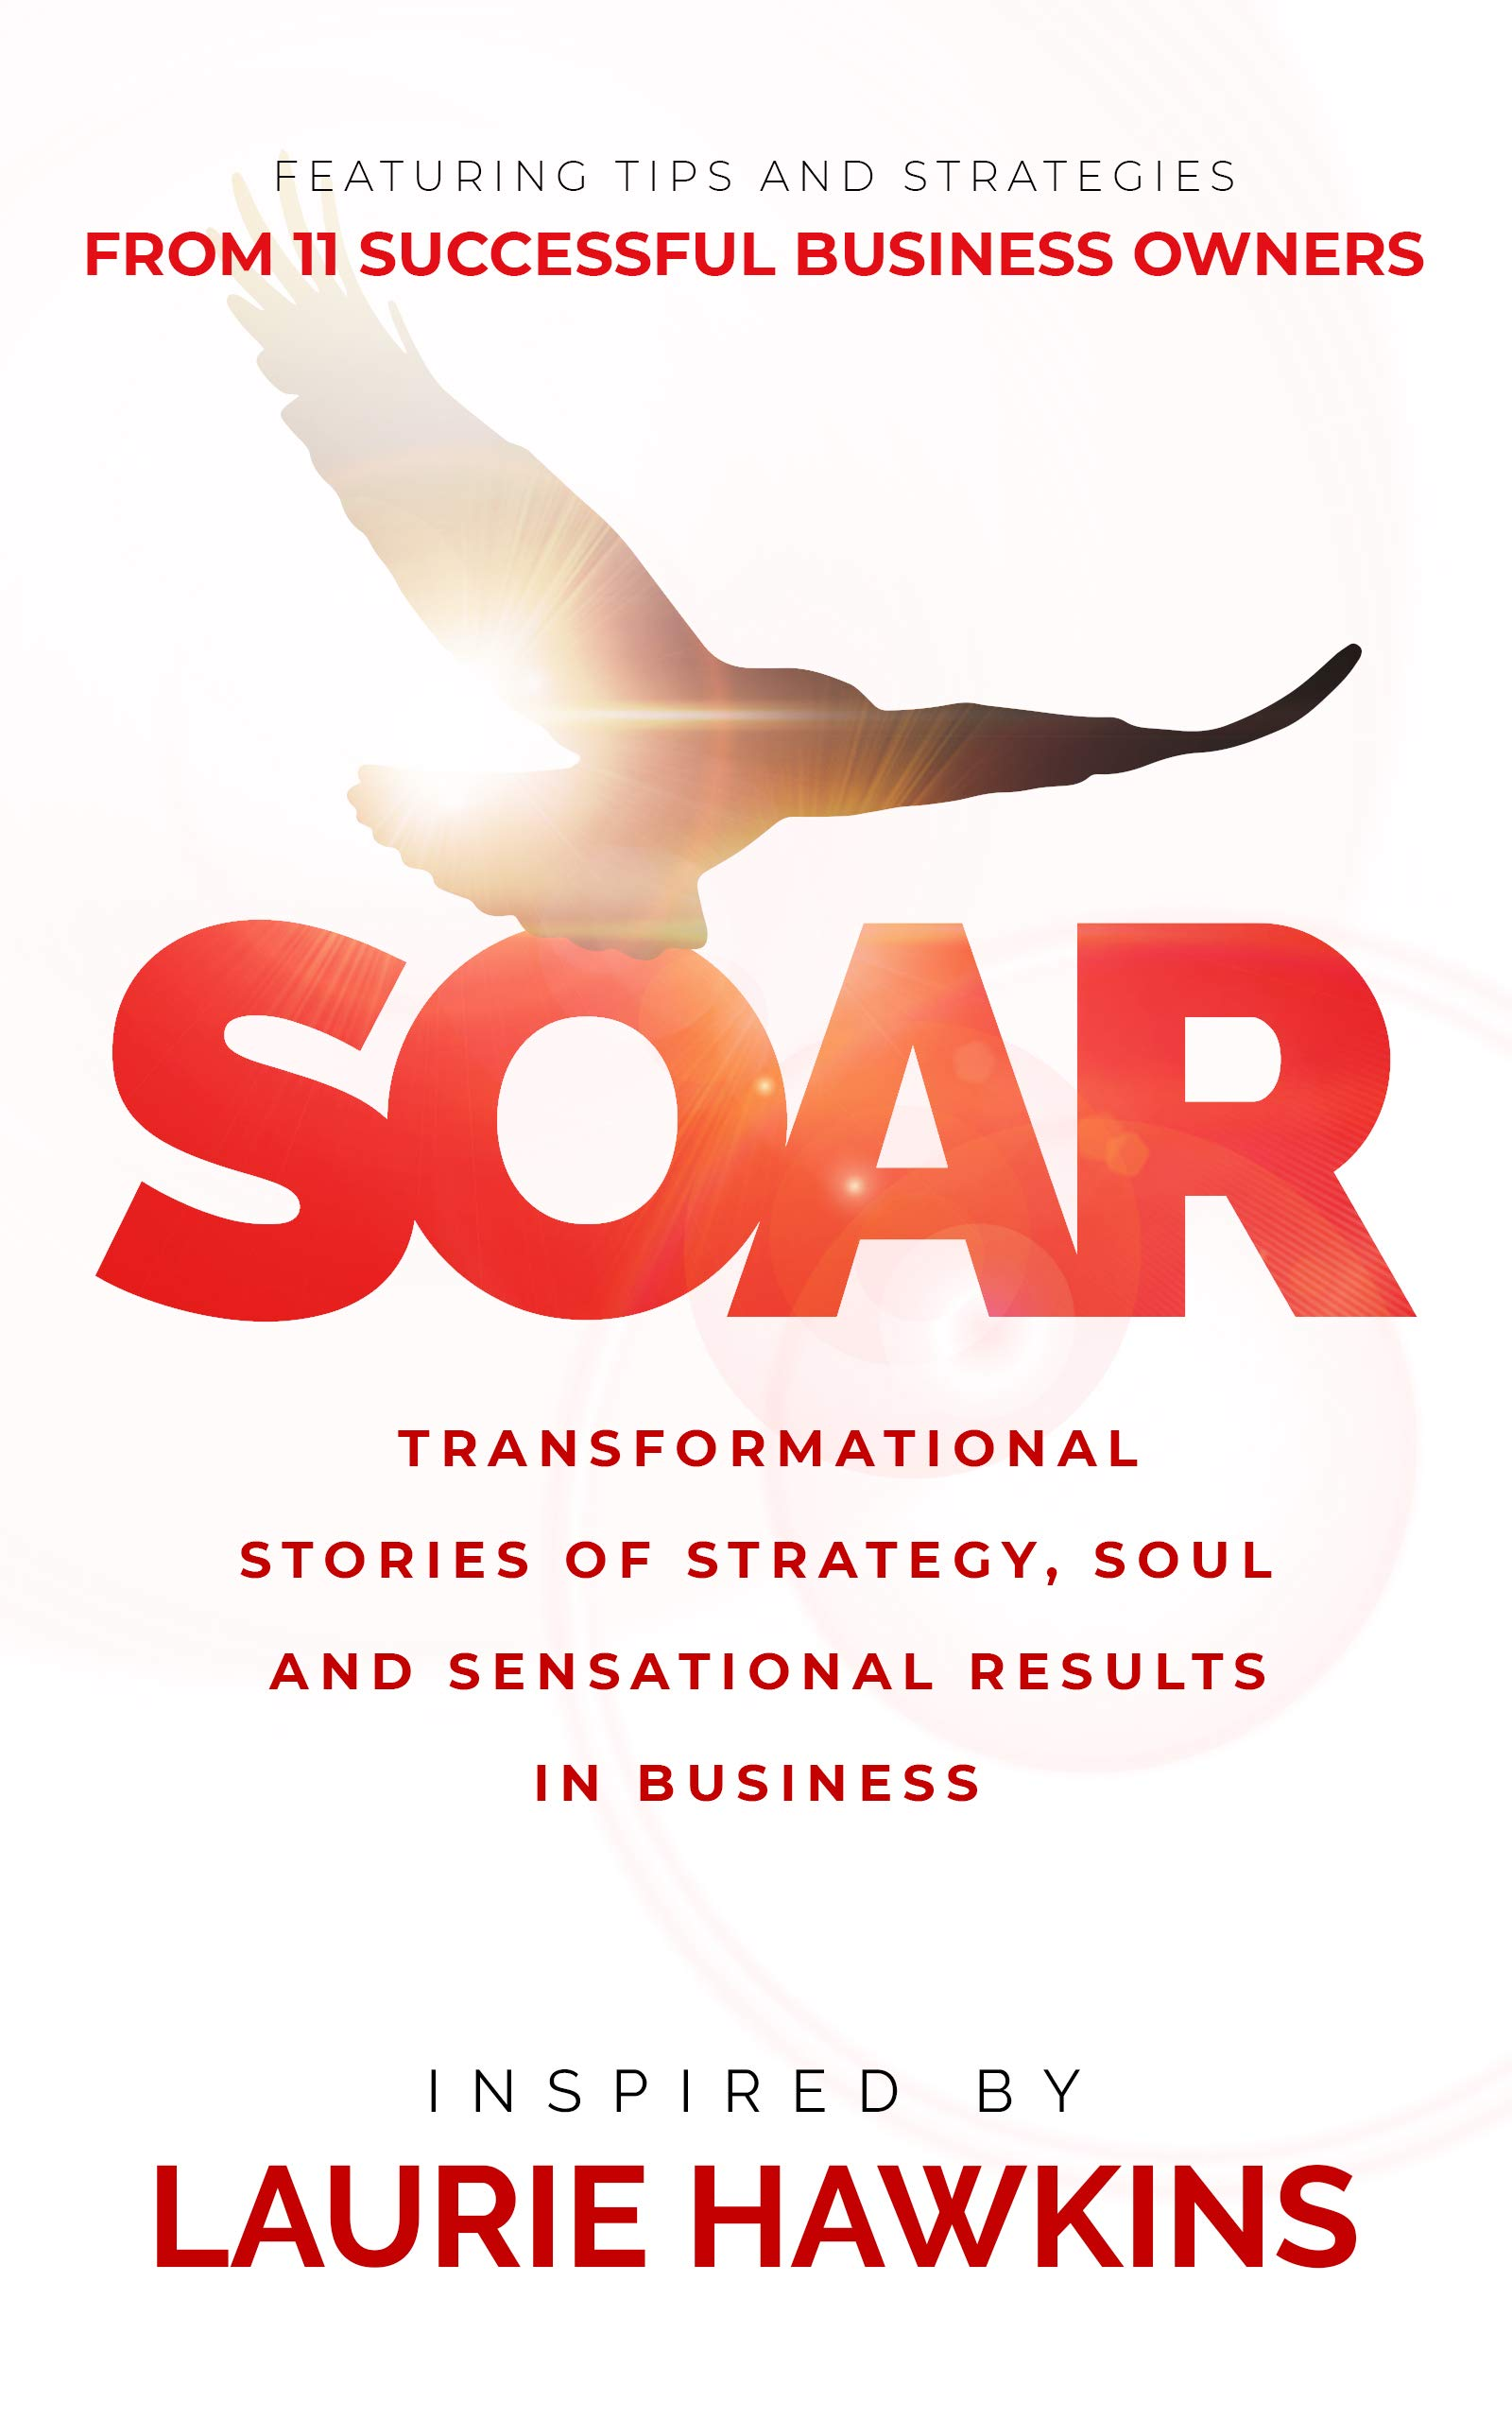 Soar: Transformational Stories of Strategy, Soul and Sensational Results in Business